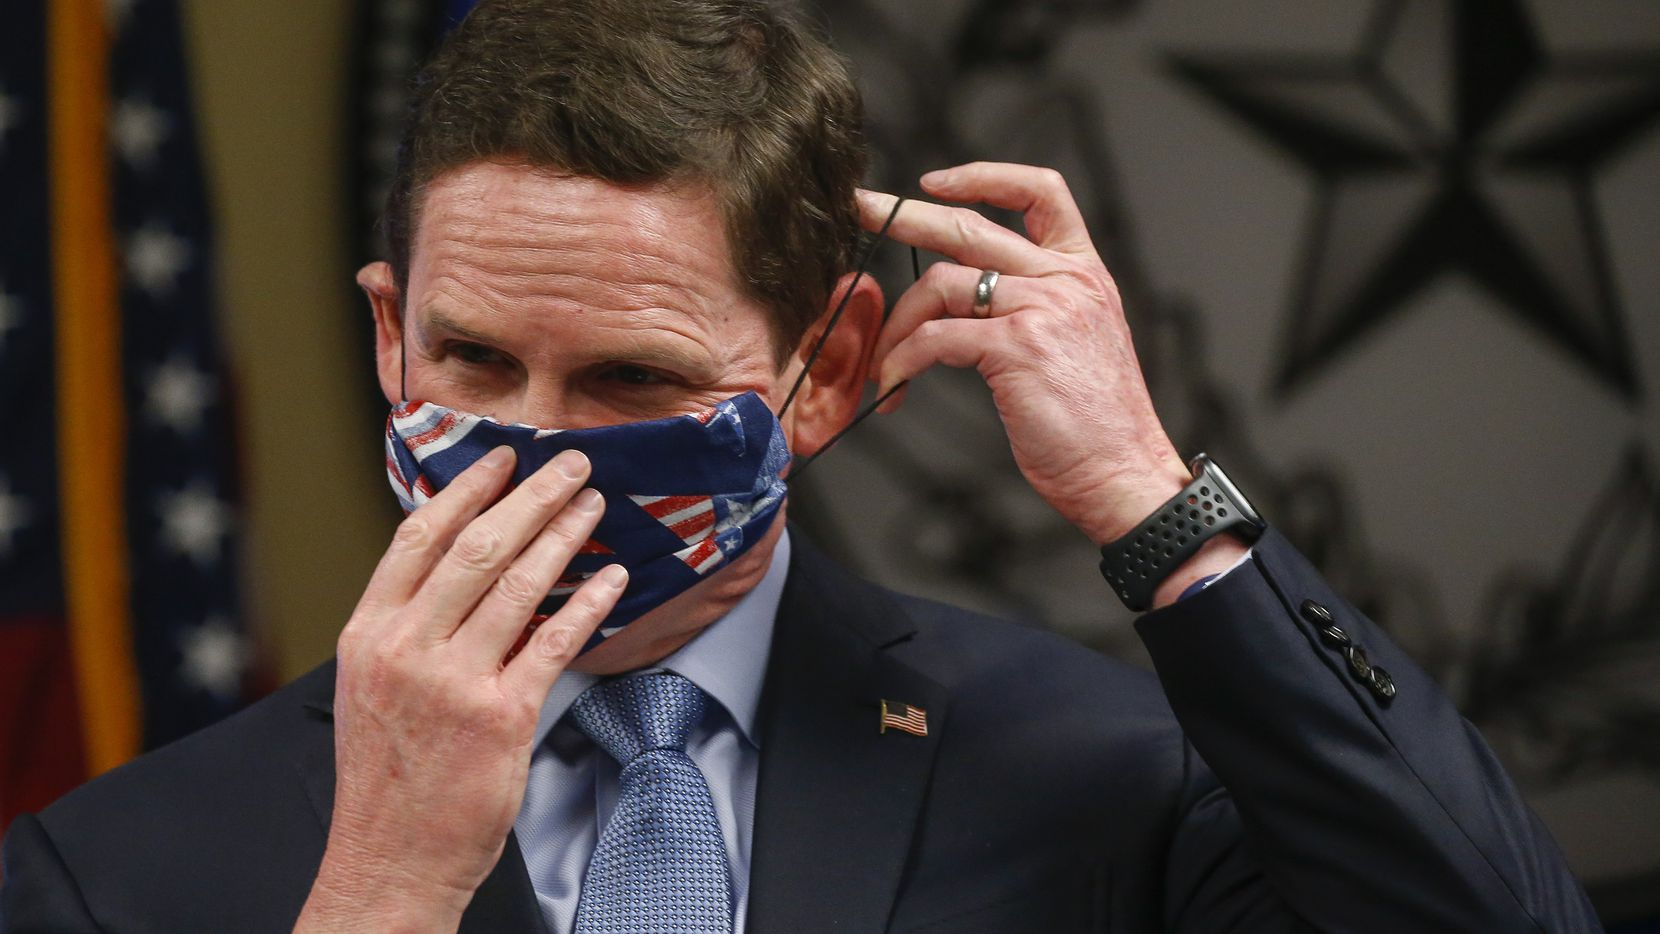 Dallas County Judge Clay Jenkins displays an improvised clothe face mask made with a bandana and hair ties as he addresses members of the media regarding the new coronavirus pandemic on Wednesday, April 8, 2020 at the Dallas County Emergency Operations Center in Dallas.